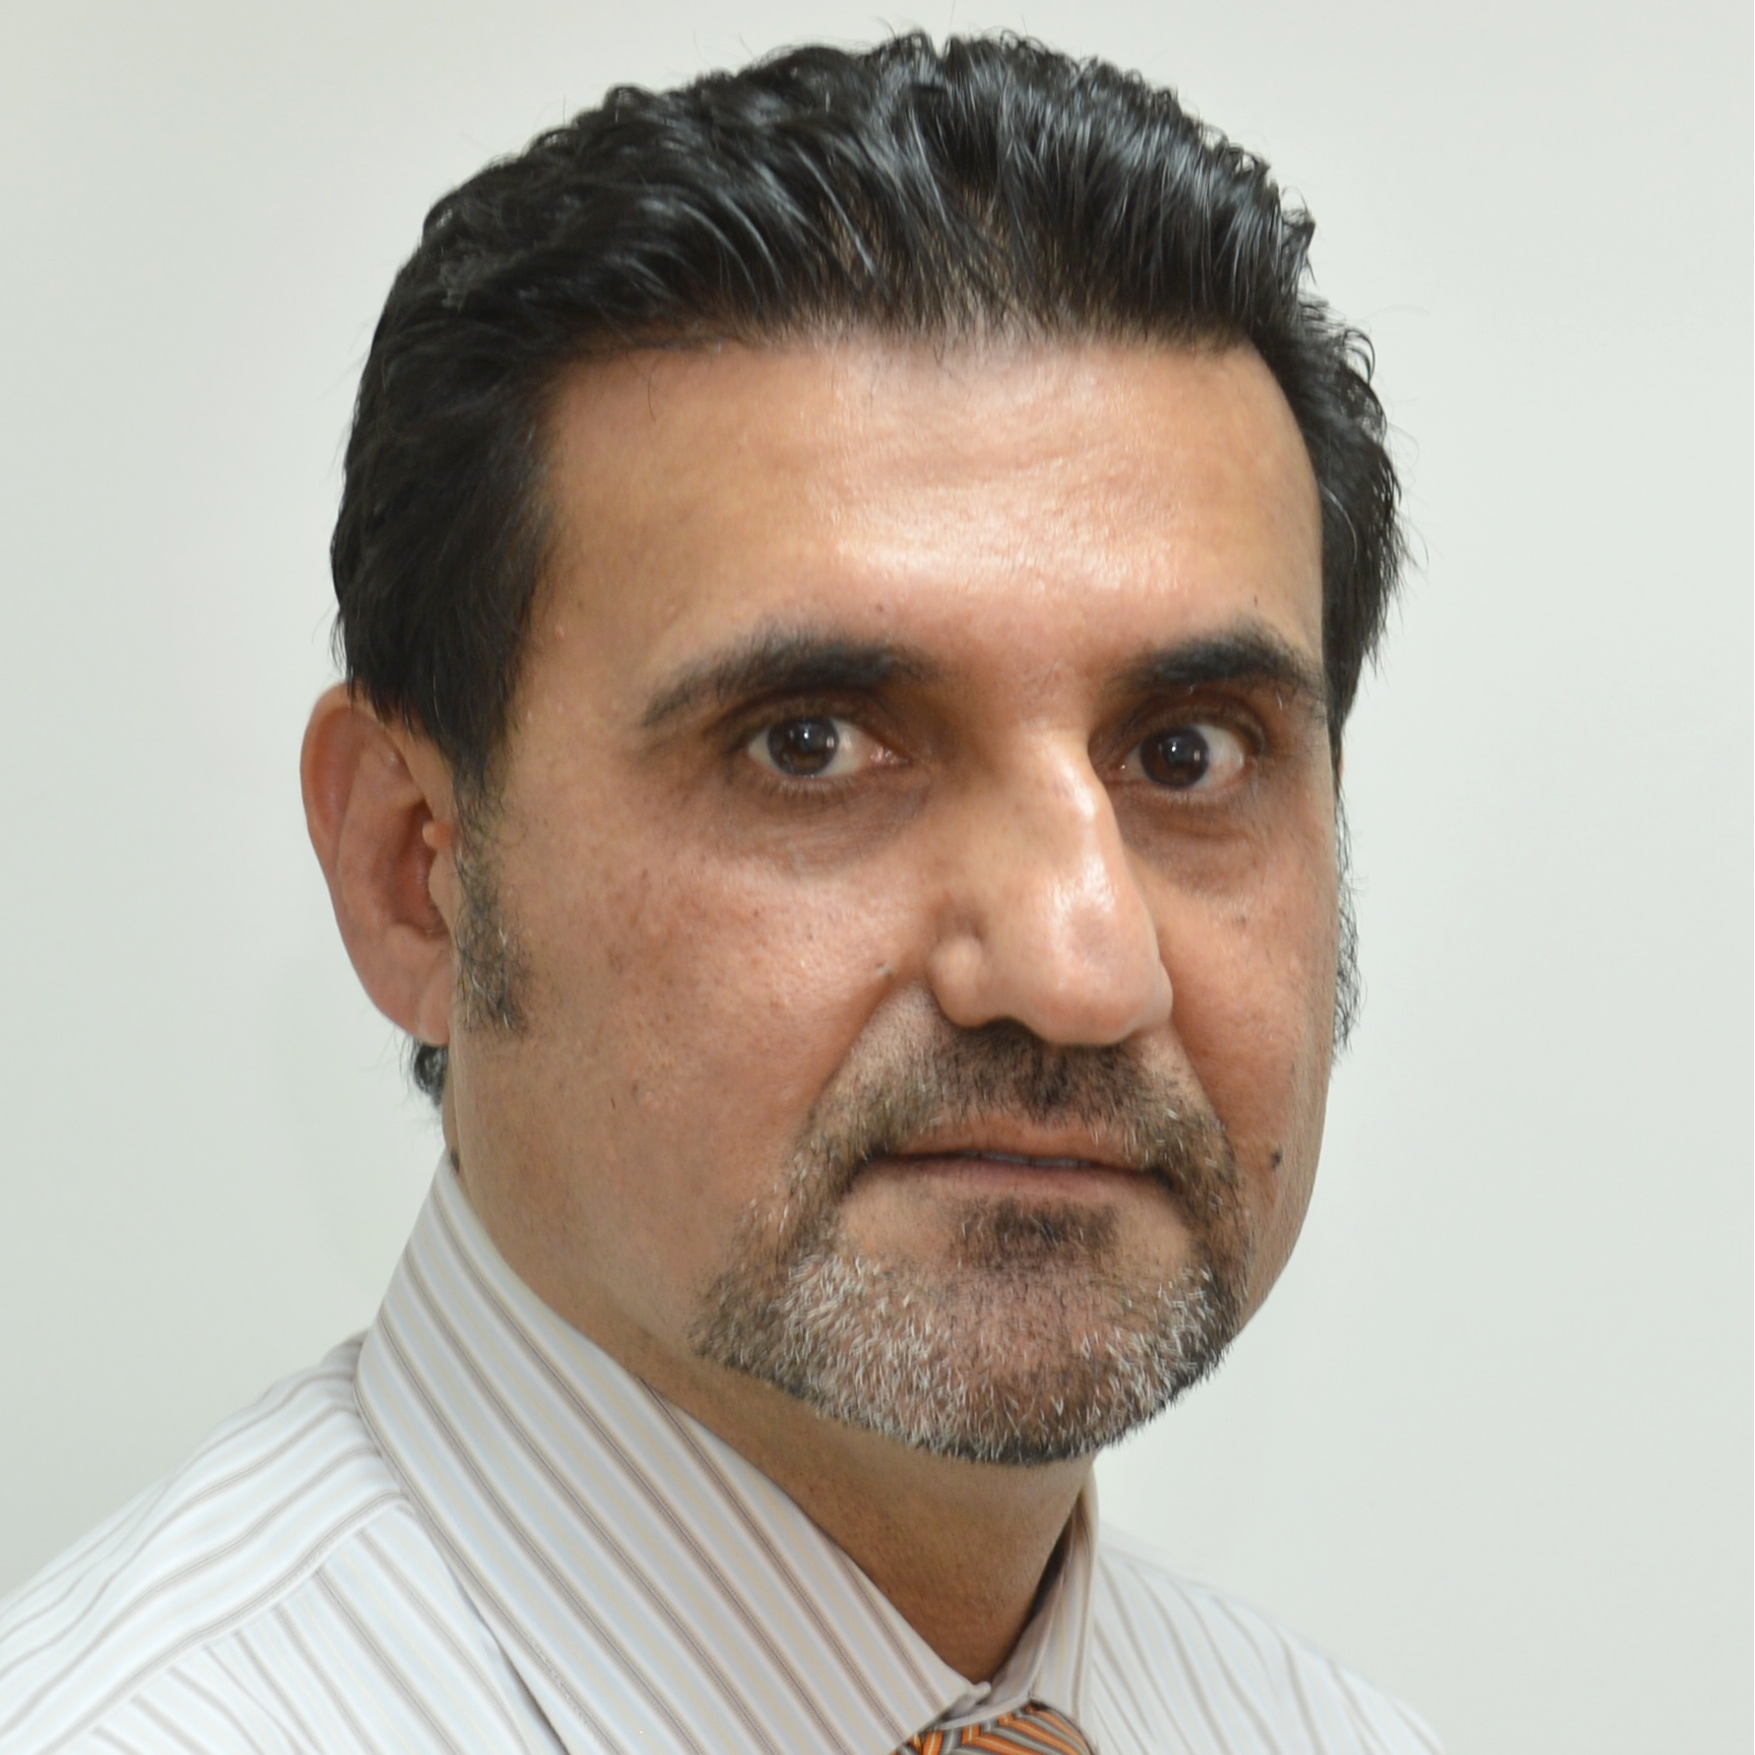 Abdulaziz Dashti, Manager, Risk Management Group at Kuwait Gulf Oil Company (KGOC)